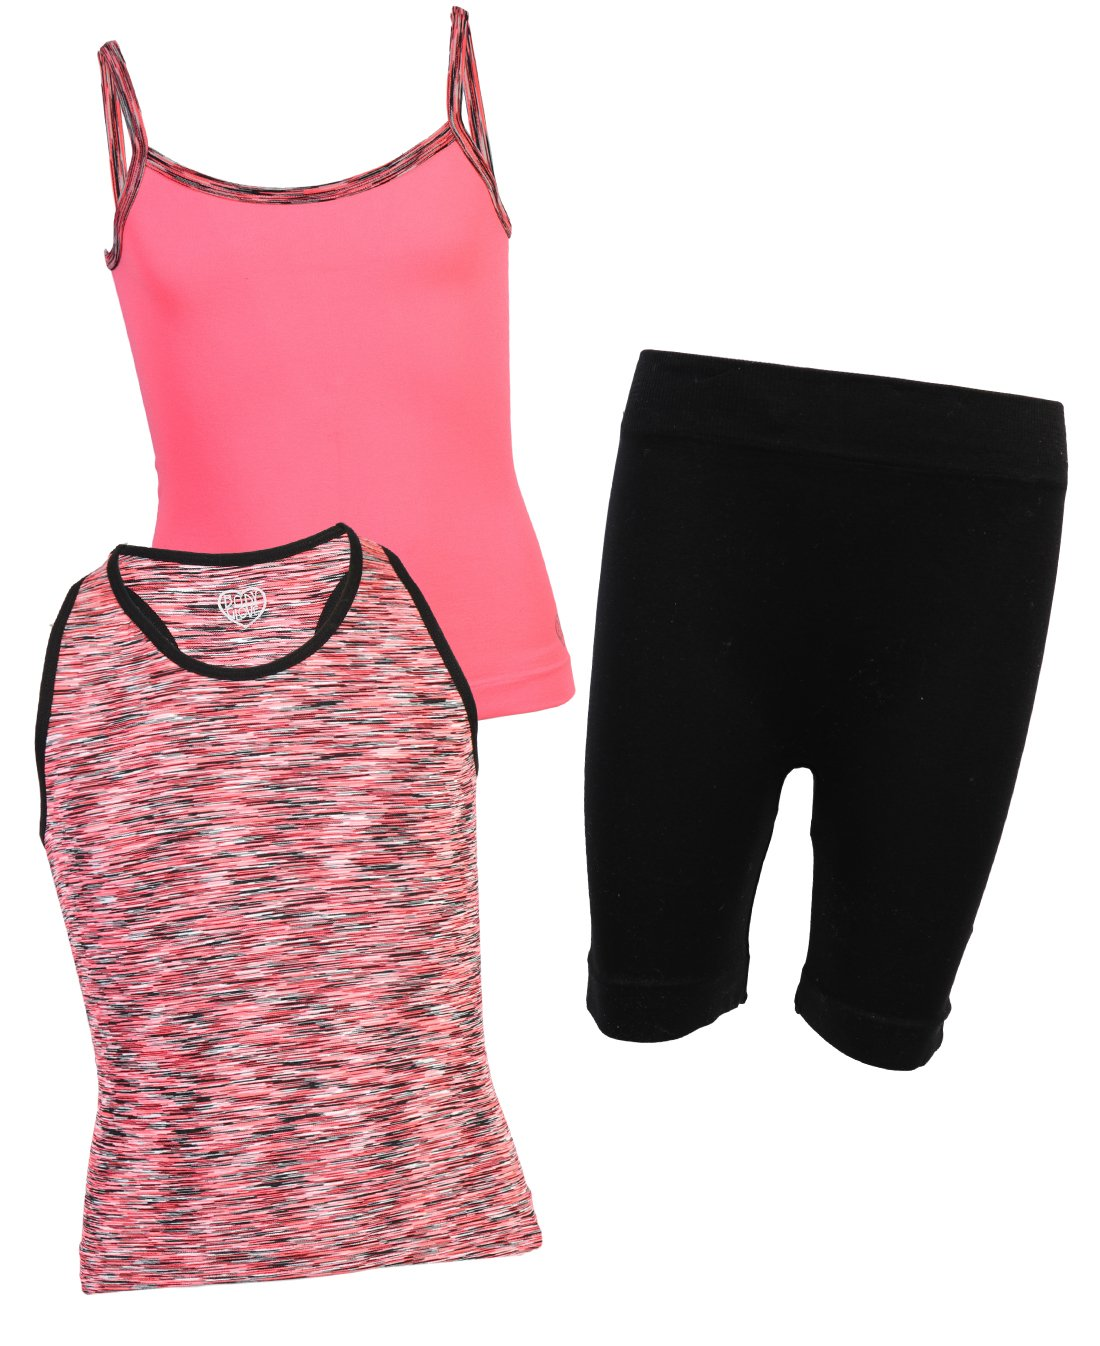 Body Glove Girl's 3-Piece Athletic Tank Tops and Shorts Sets, Coral, 10/12'